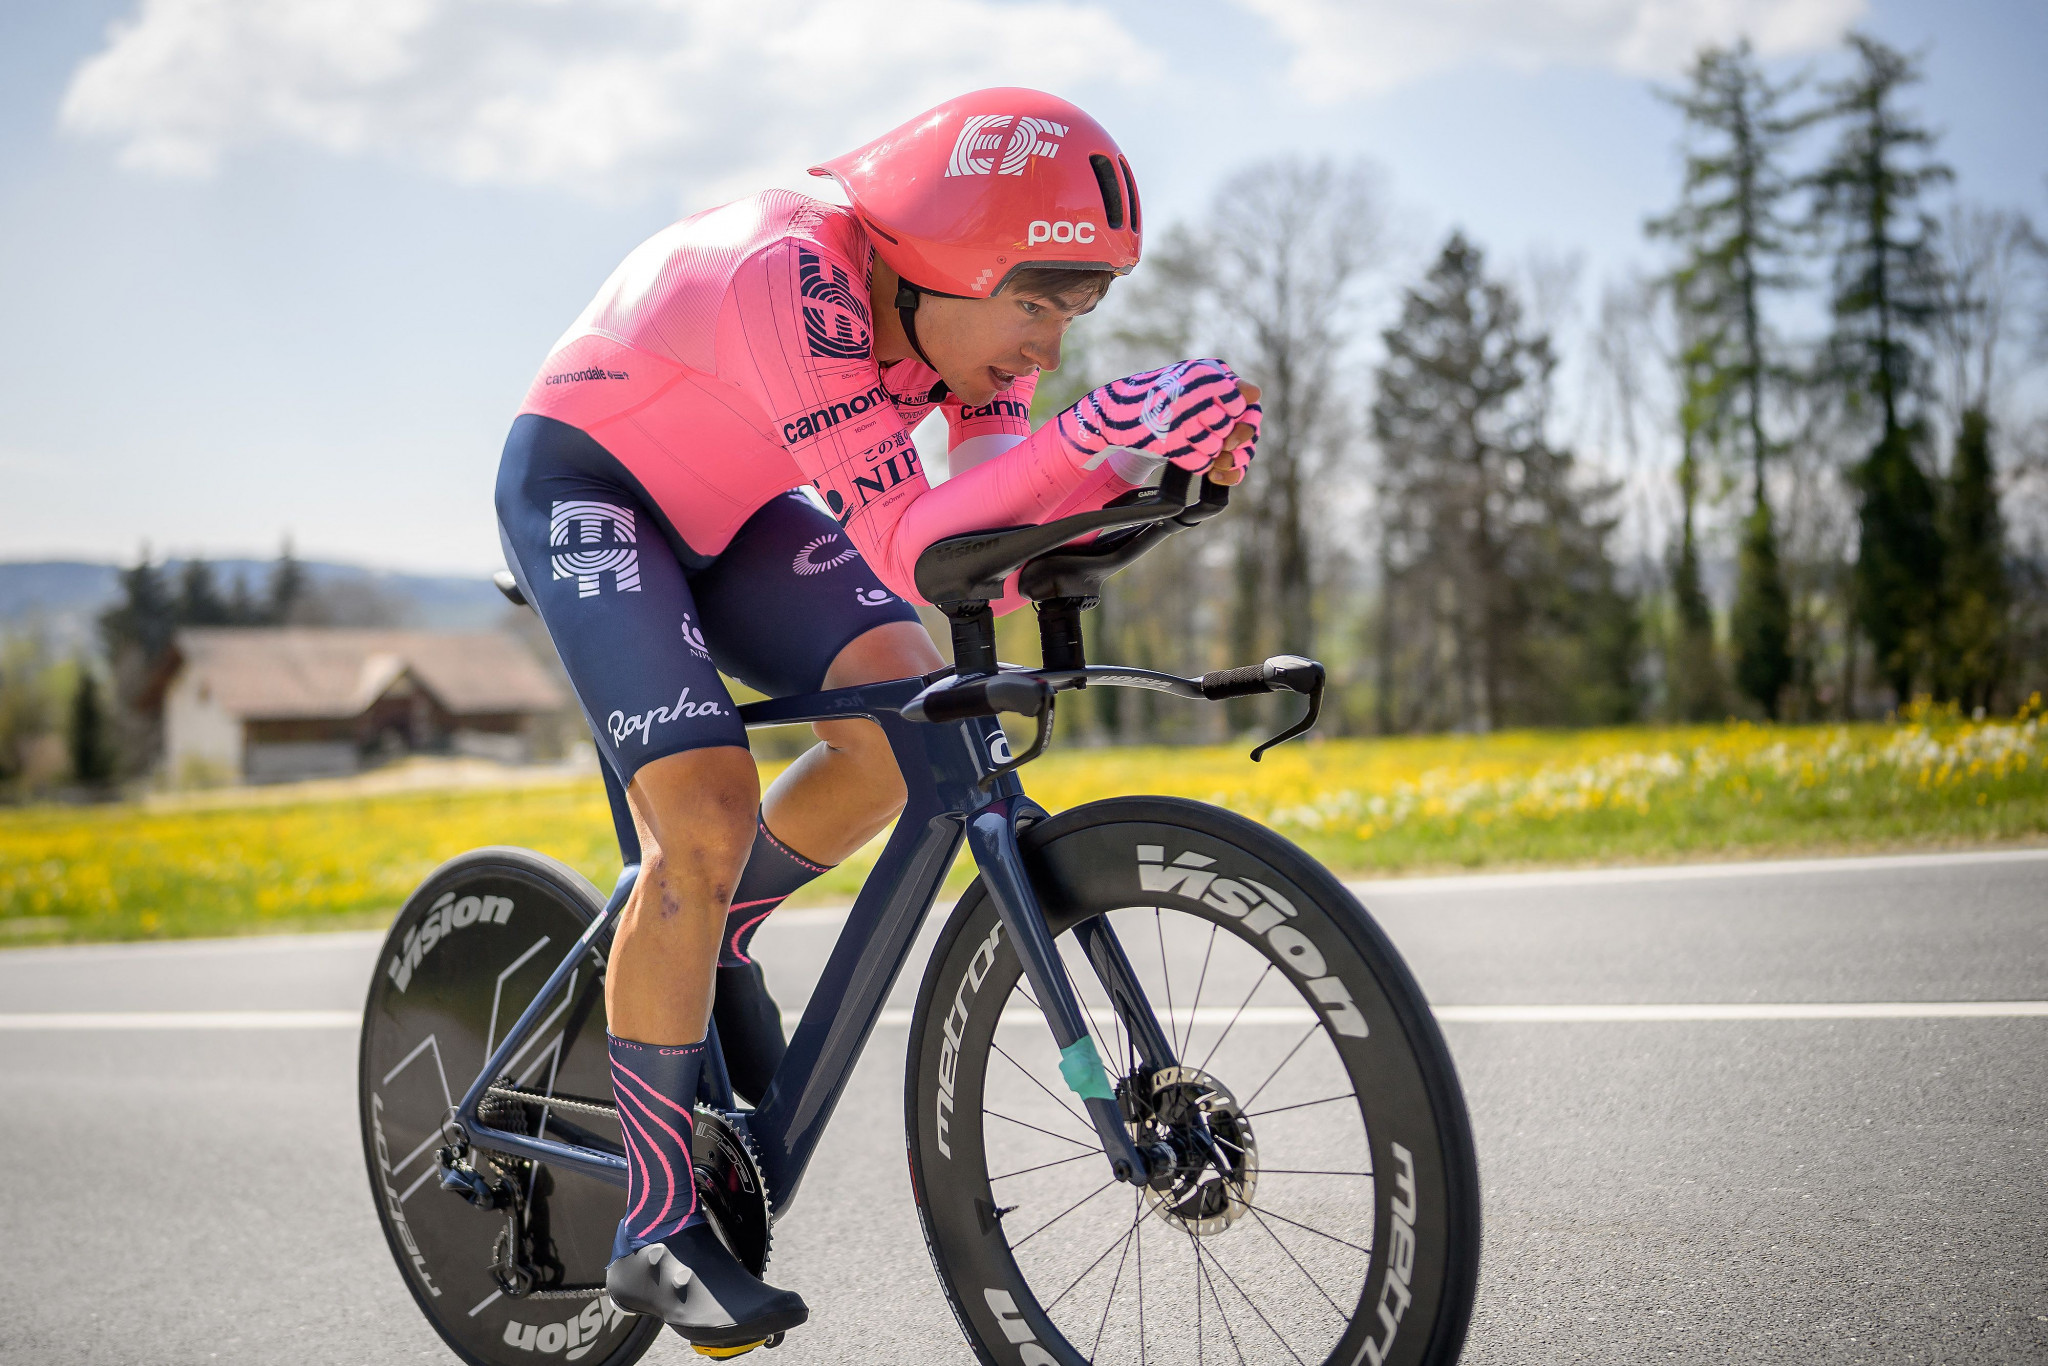 Bisseger tops general classification with stage two win in Benelux Tour